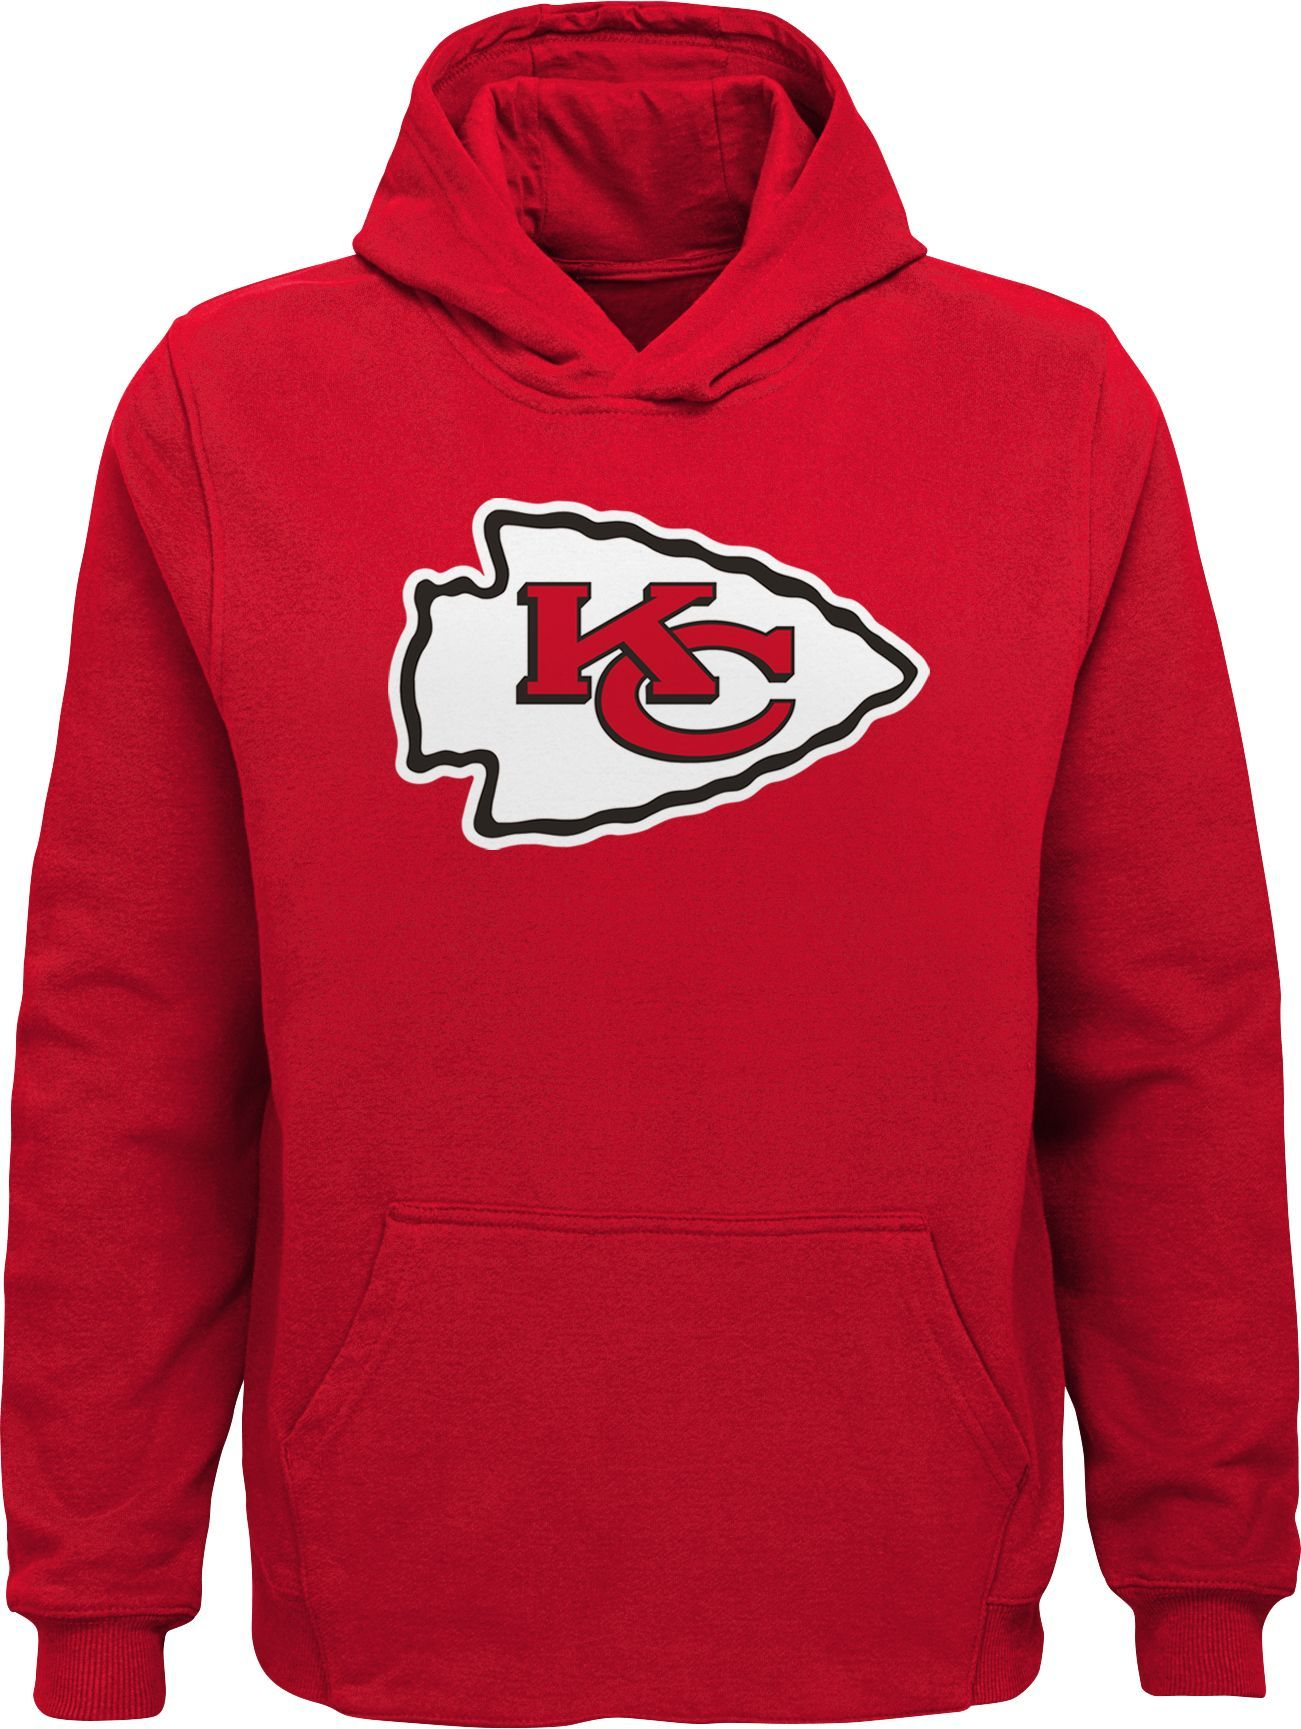 Nice Team Apparel Youth Kansas City Logo Red Hoodie, Size: Medium in 2019  hot sale